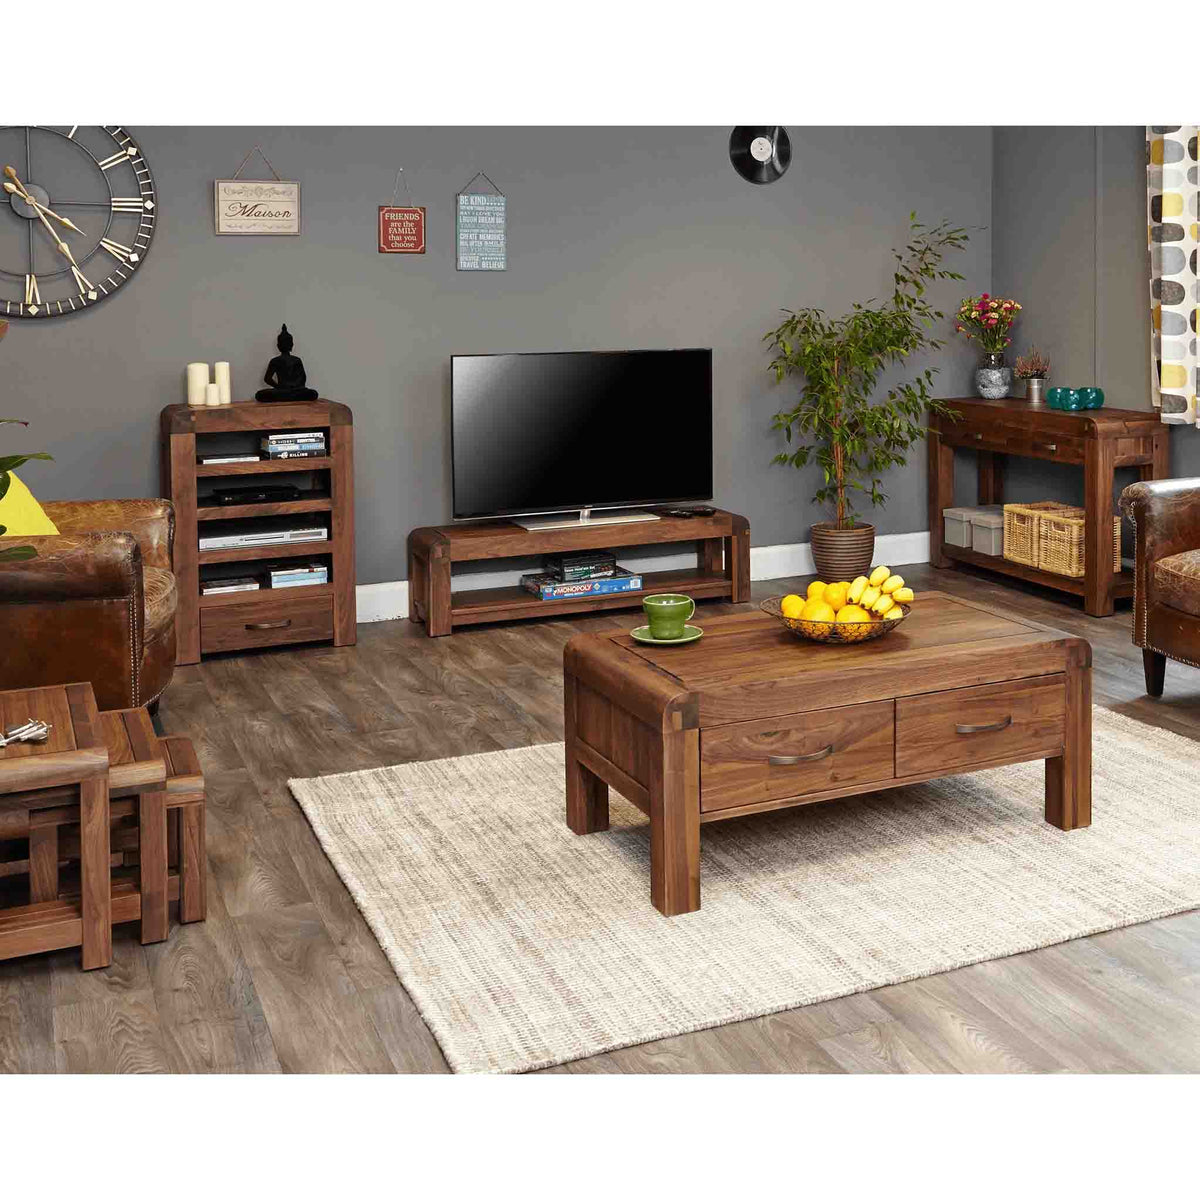 Lifestyle view of The Salem Walnut Large Wooden TV Stand 130cm